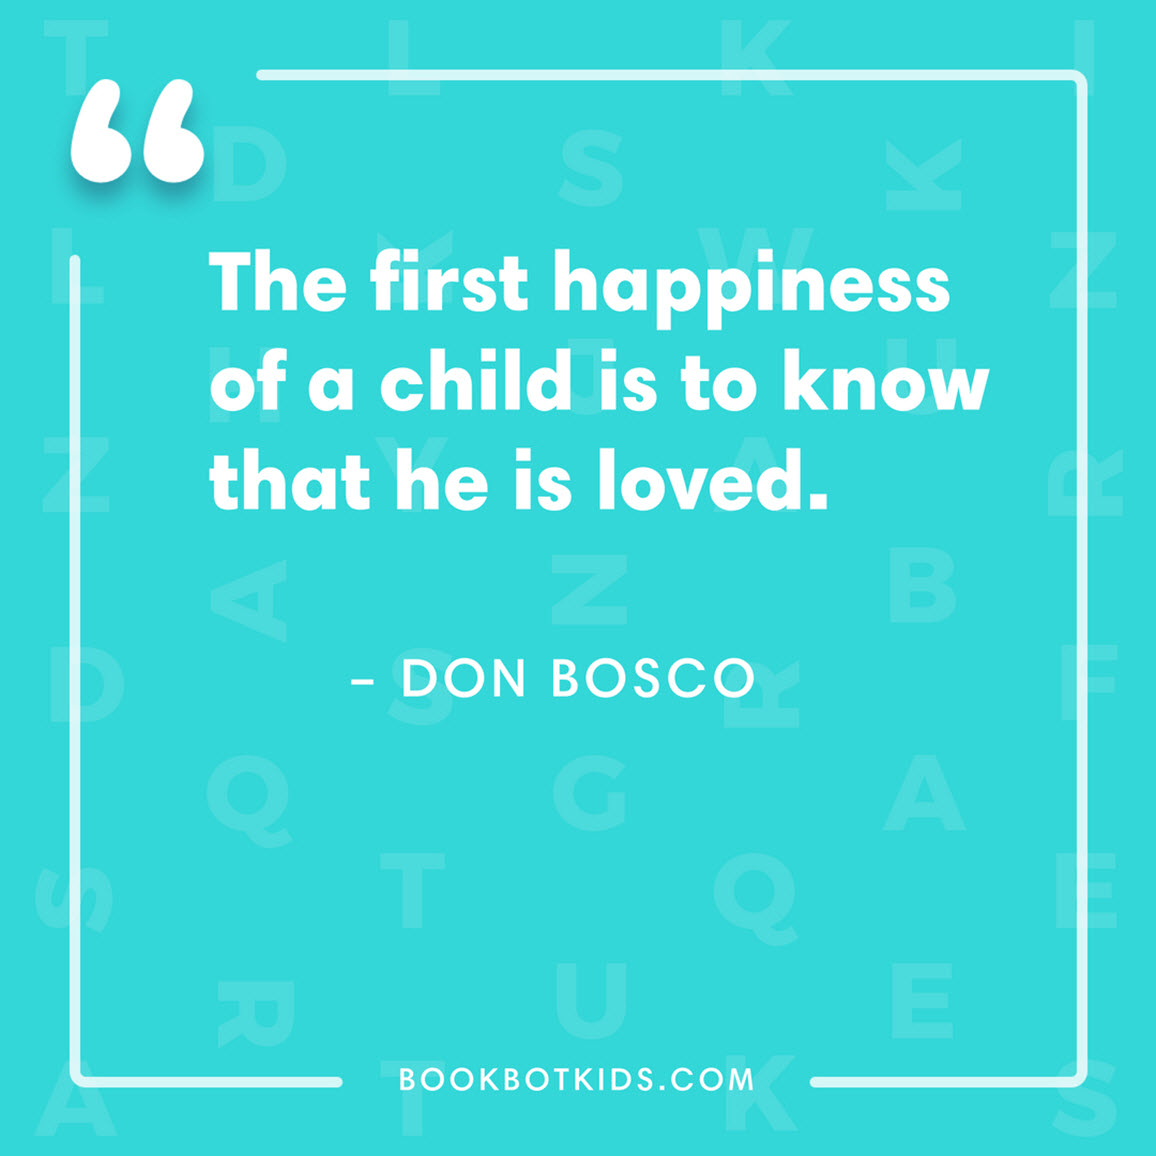 The first happiness of a child is to know that he is loved. – Don Bosco